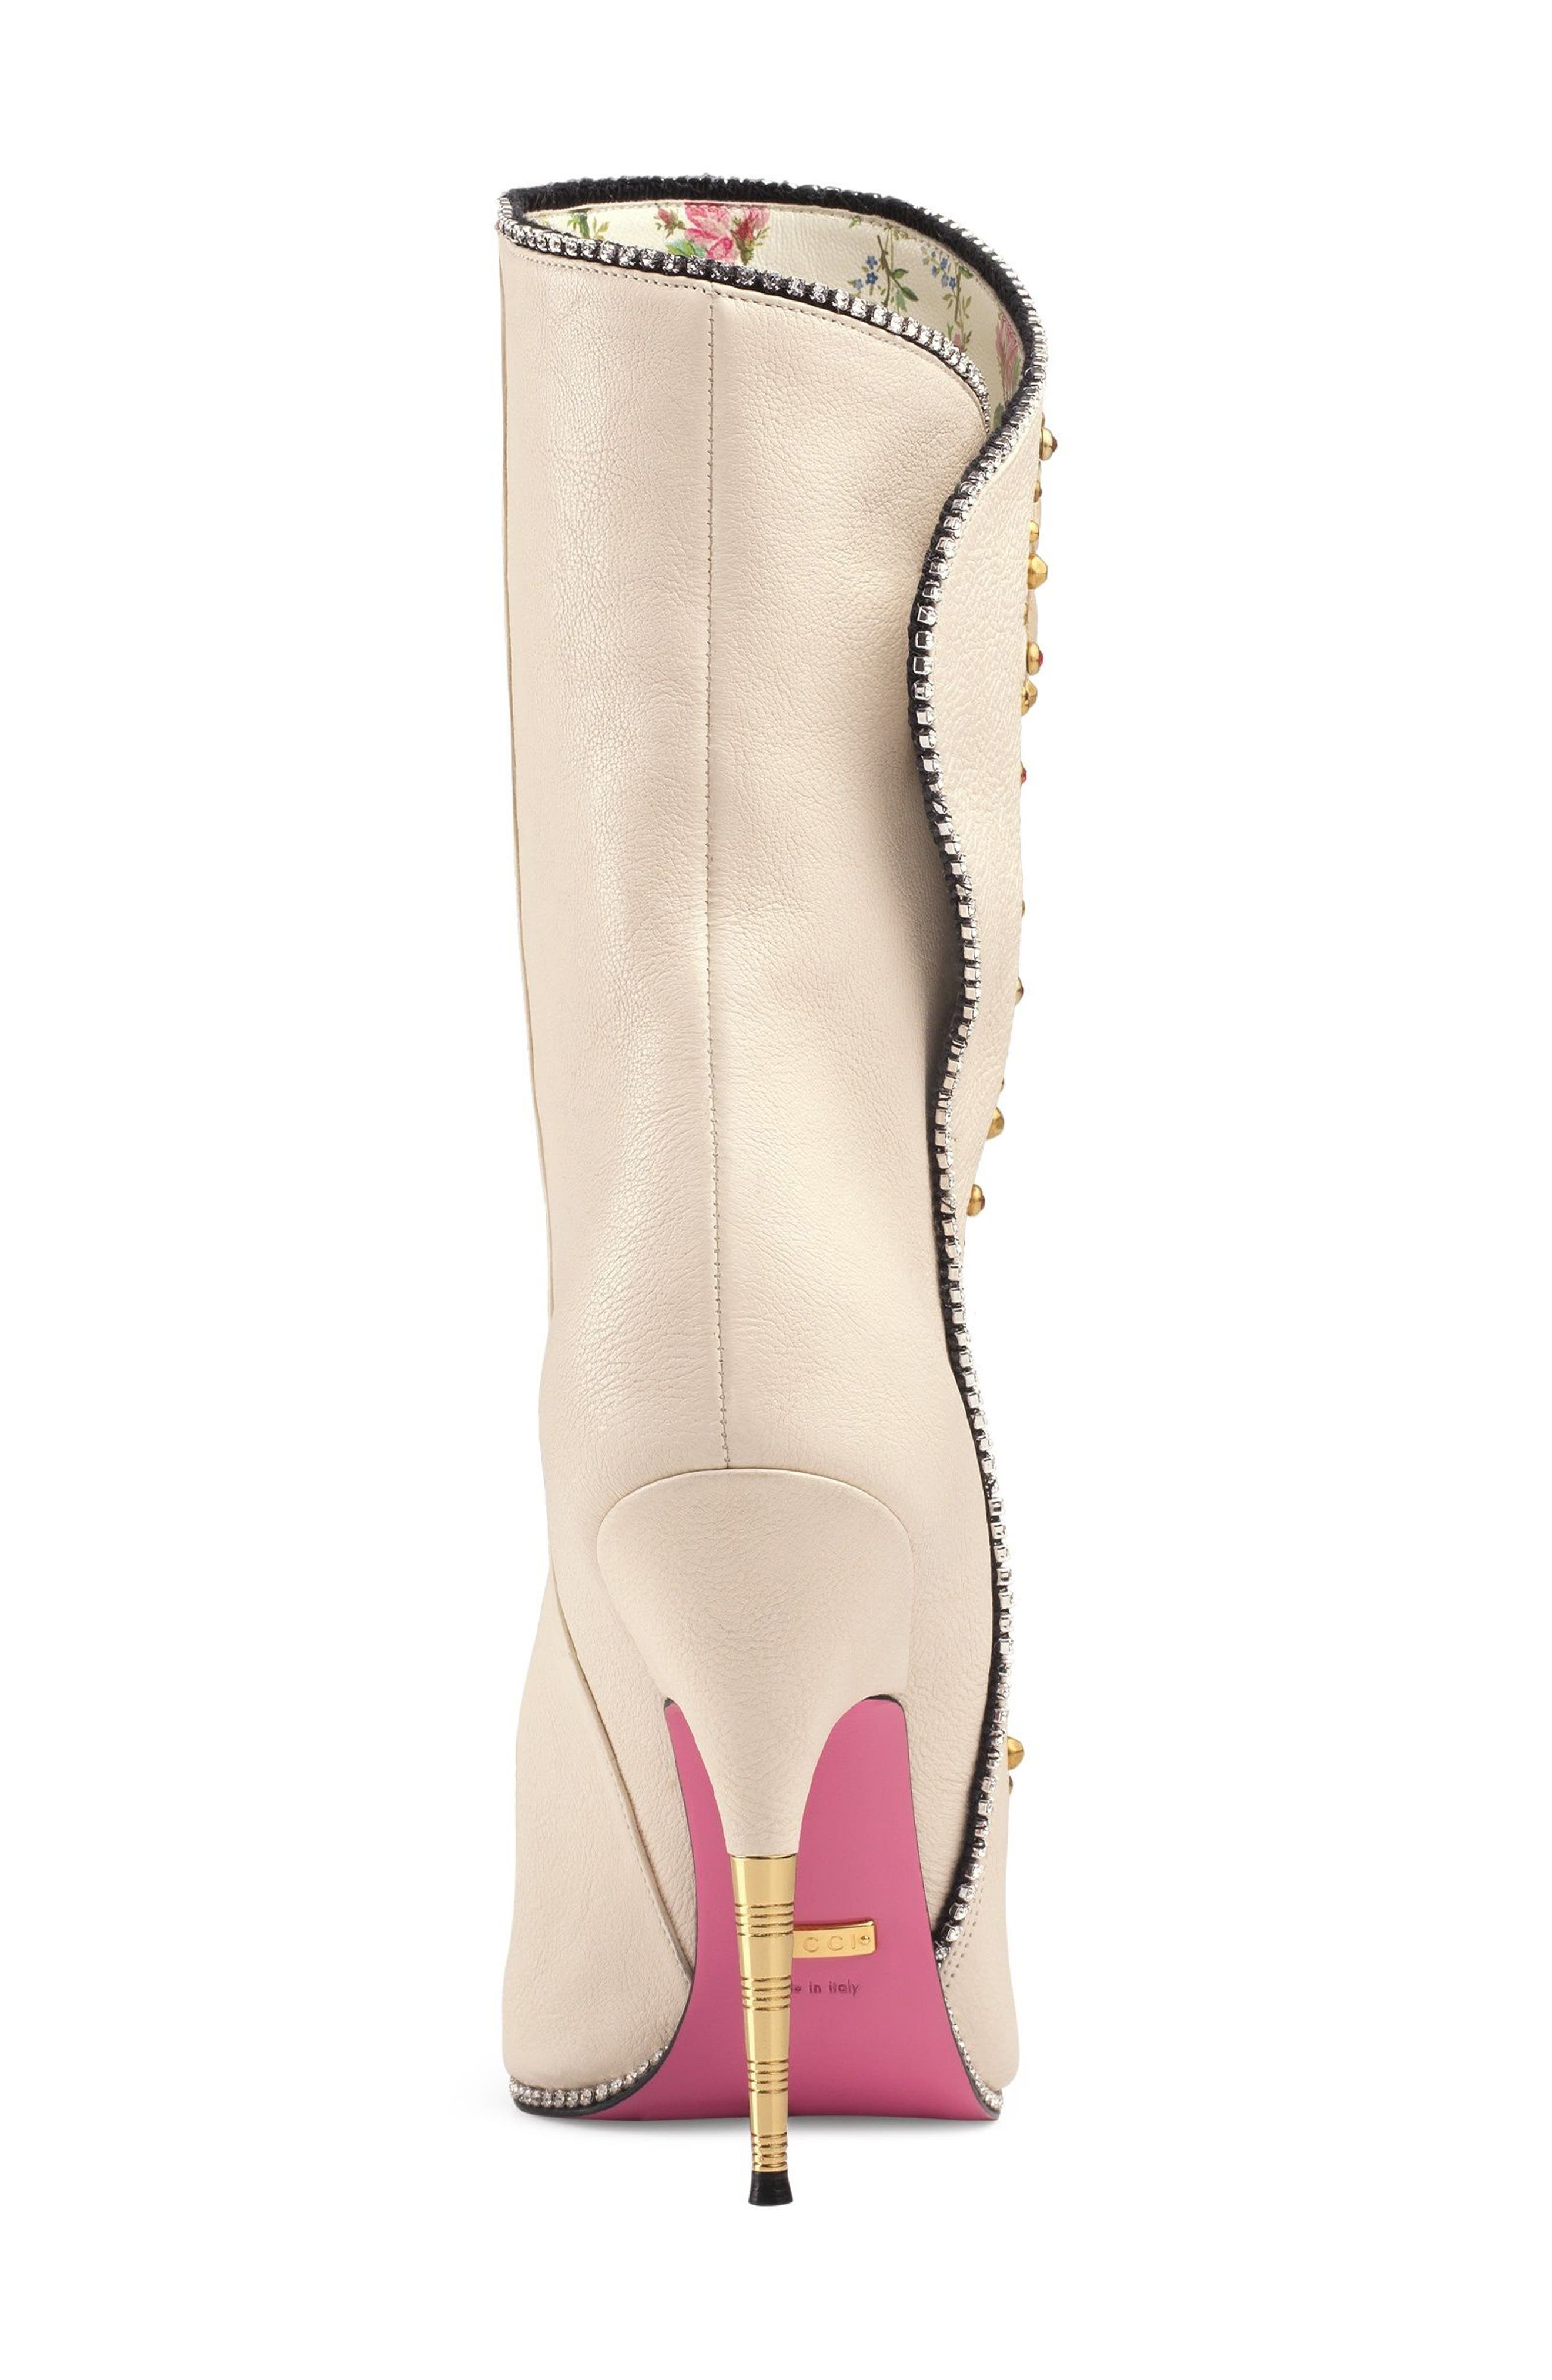 Fosca Floral Embellished Pointy Toe Boot,                             Alternate thumbnail 4, color,                             White Floral